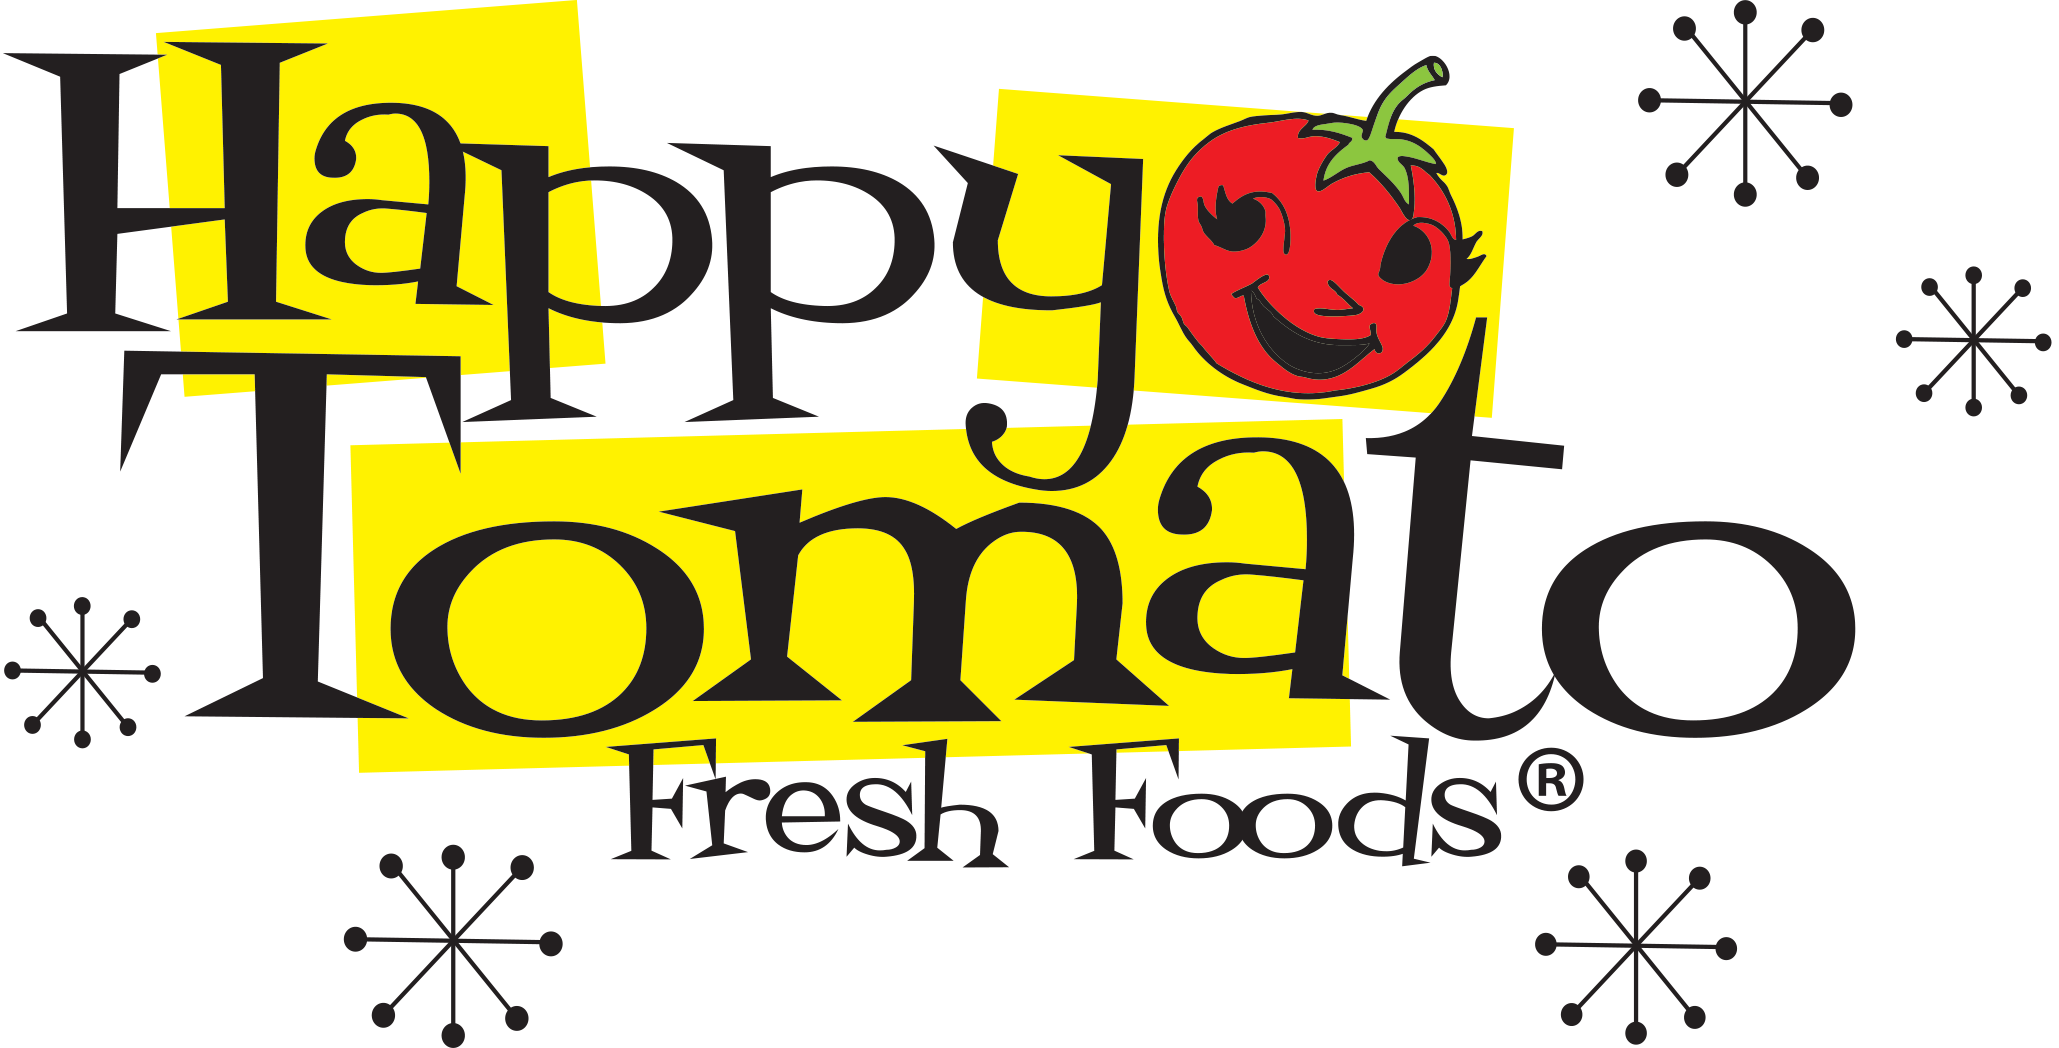 Fresh foods salsa is. Tomatoes clipart happy tomato